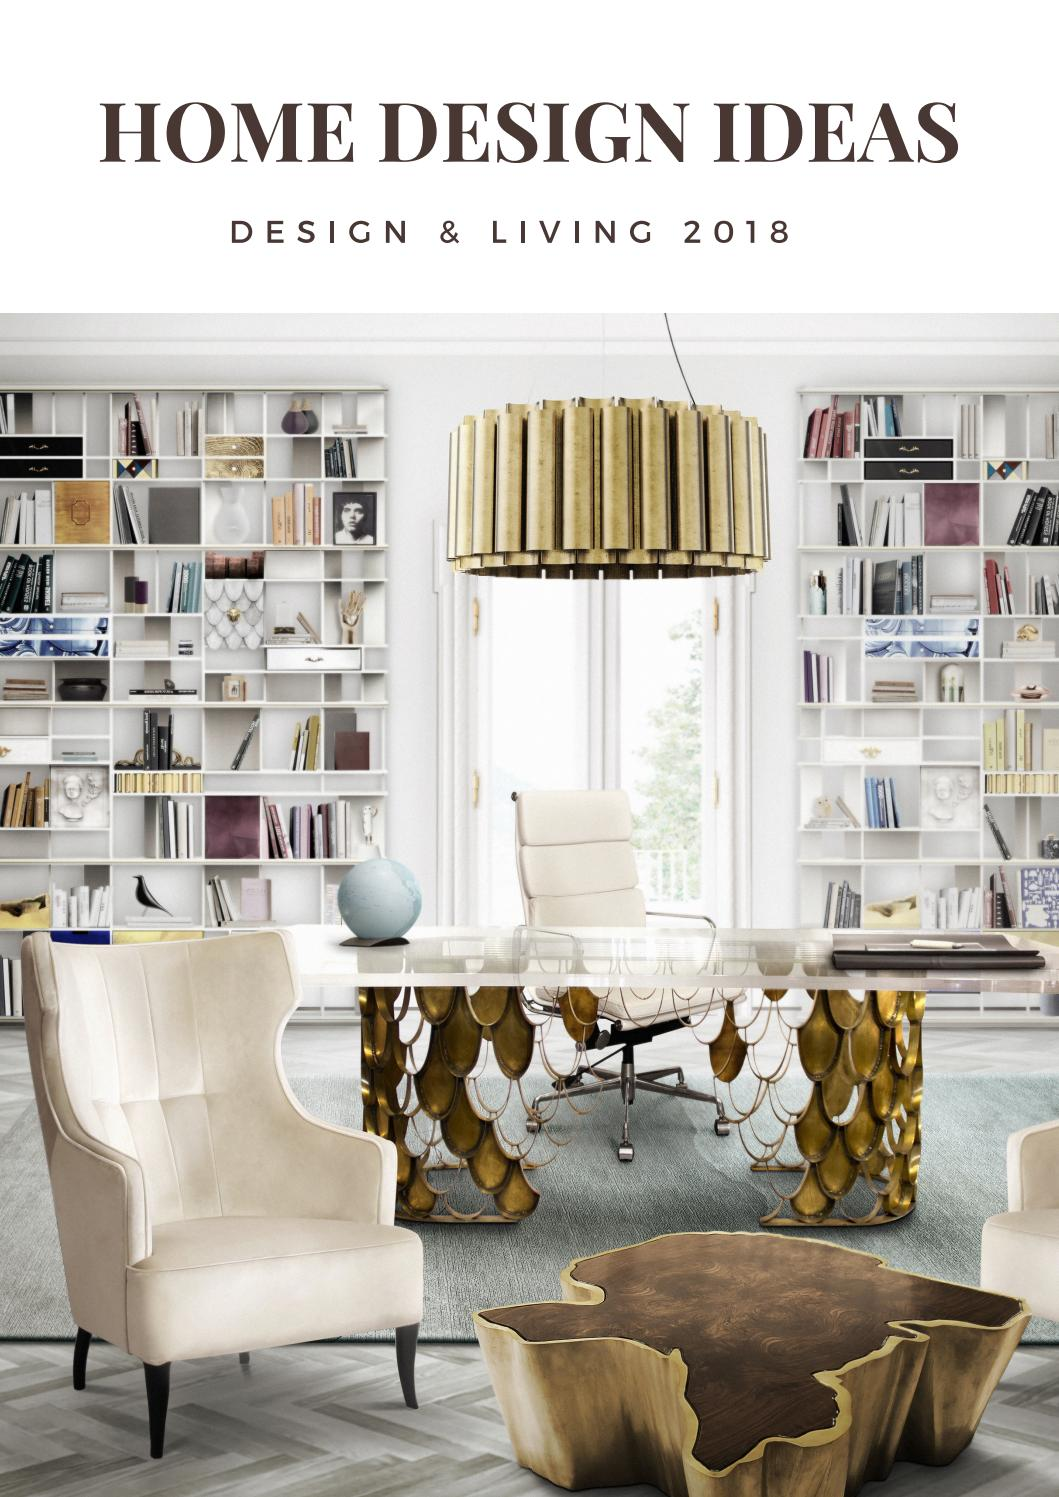 Home Living Interior Designer Magazine Home Decor Trends Home Living By Home Living Magazines Issuu